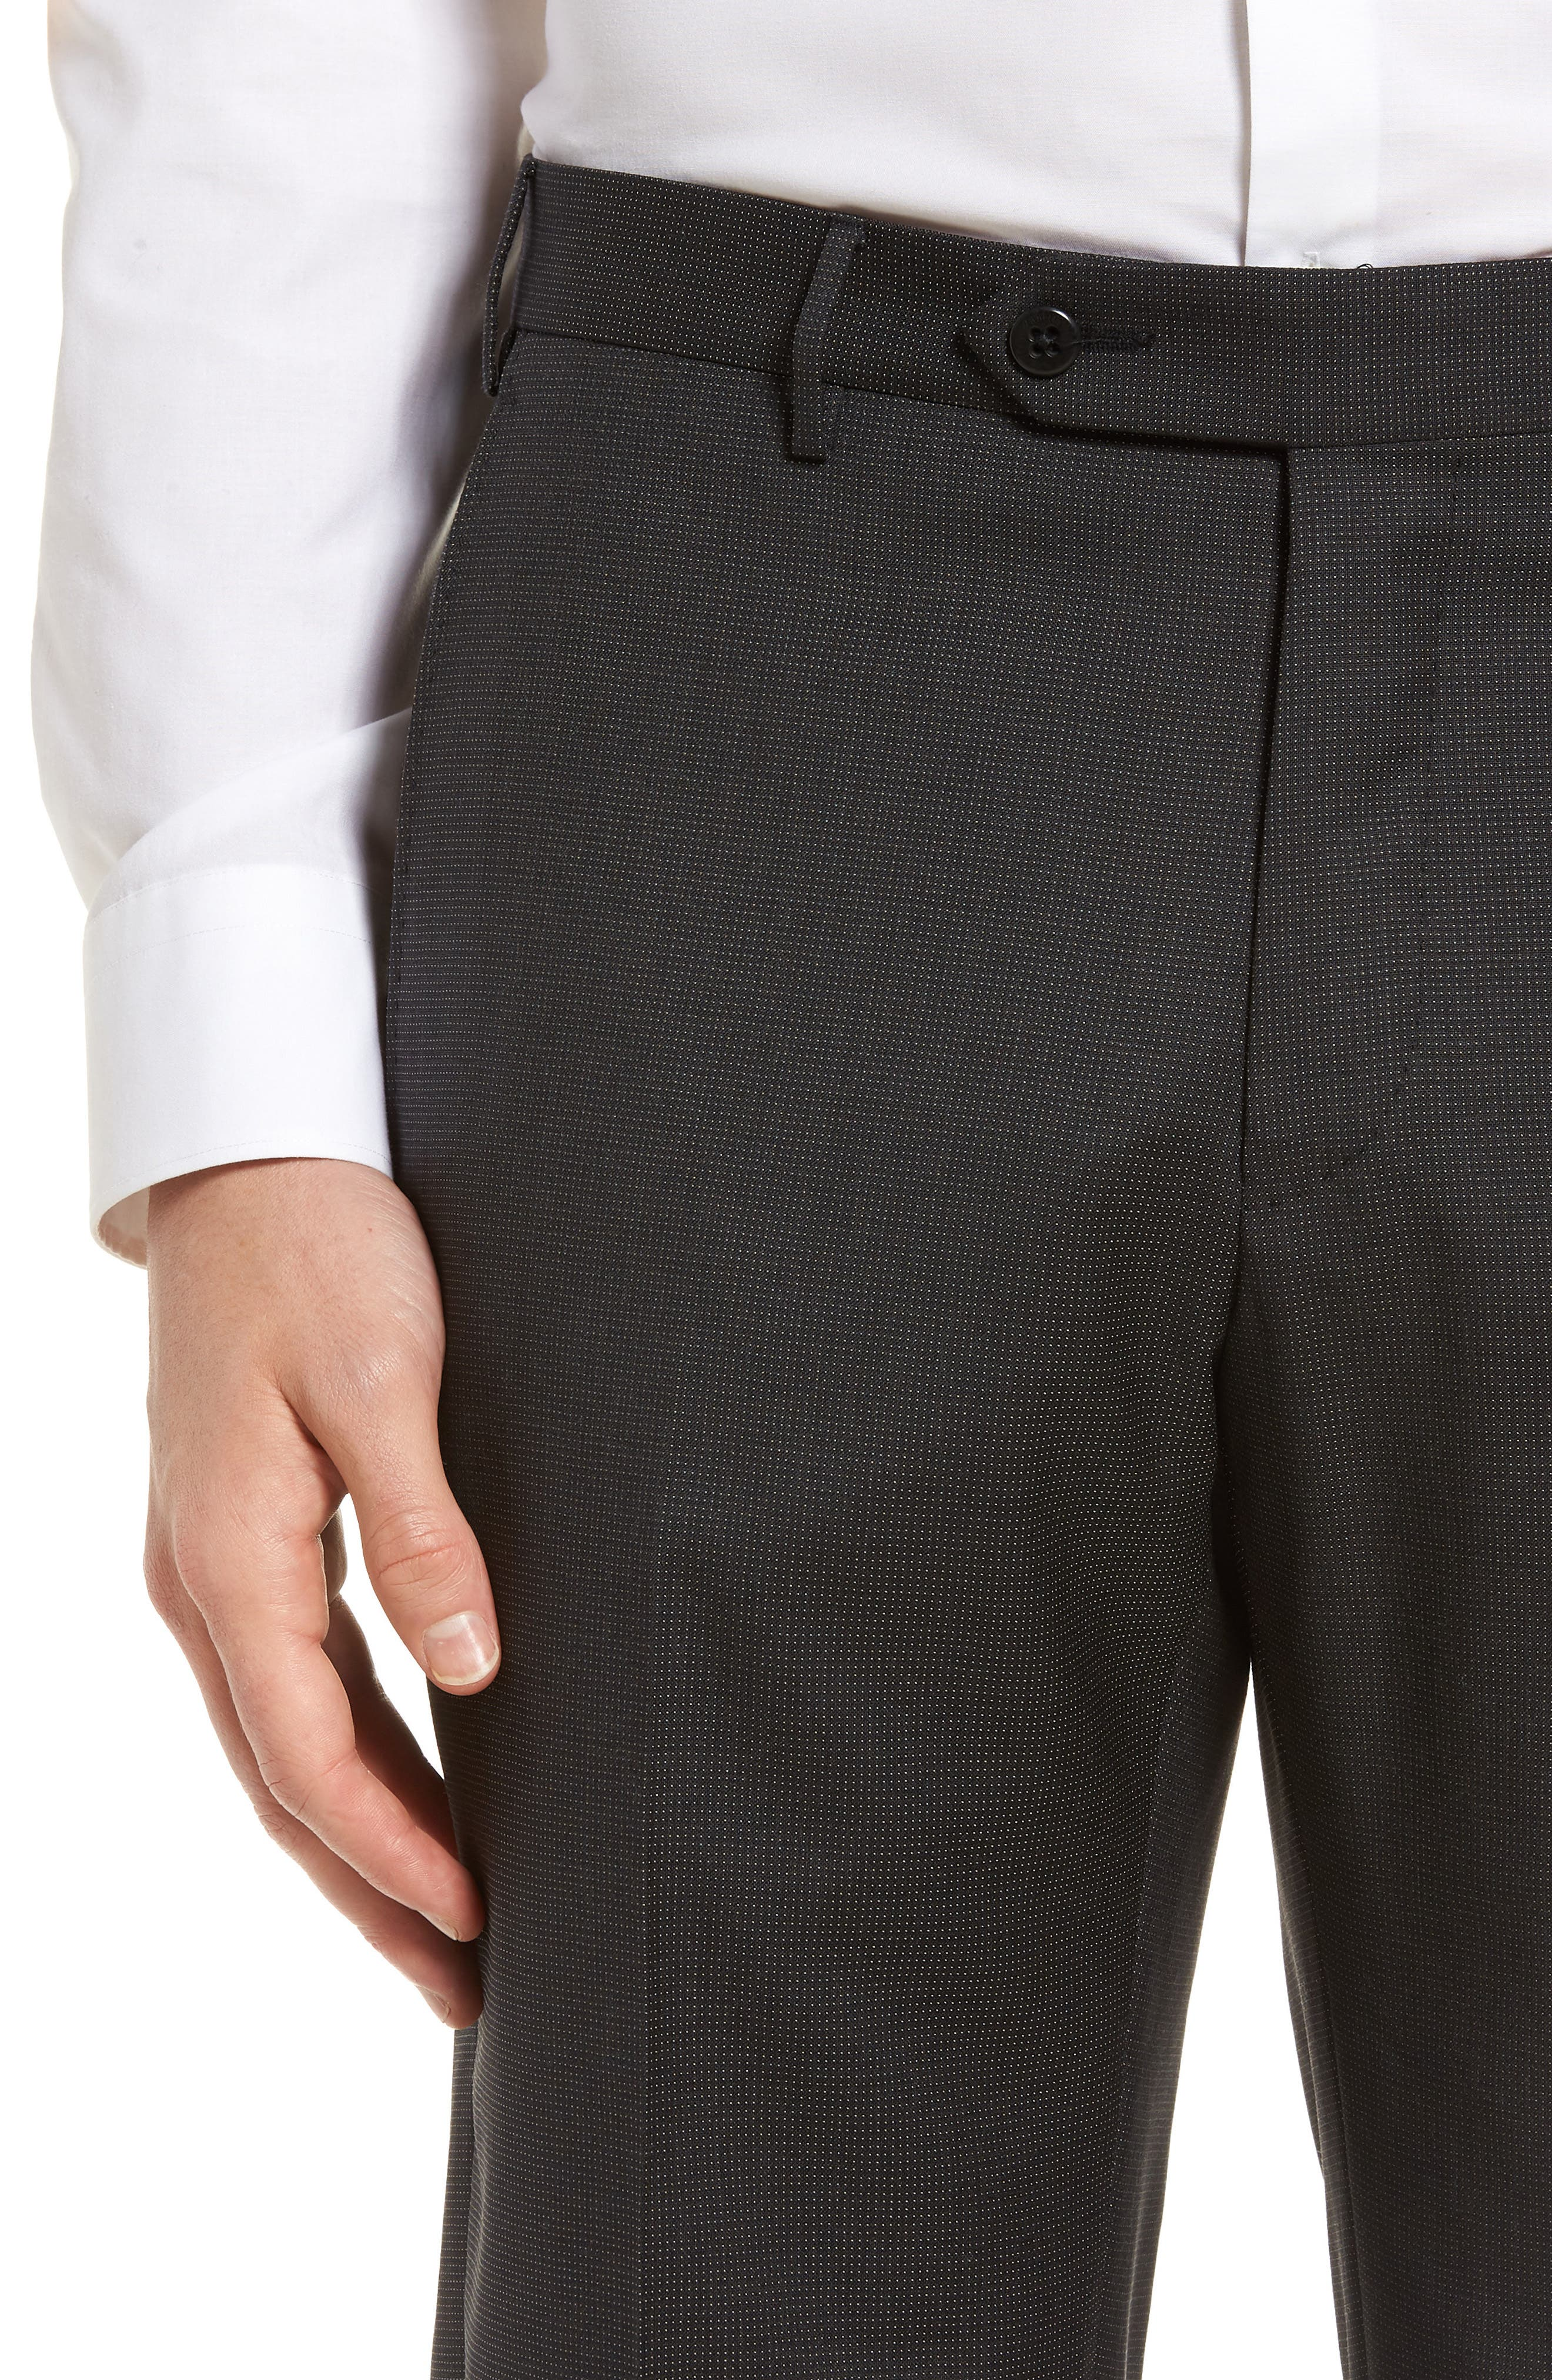 Parker Flat Front Pindot Wool Trousers,                             Alternate thumbnail 4, color,                             020